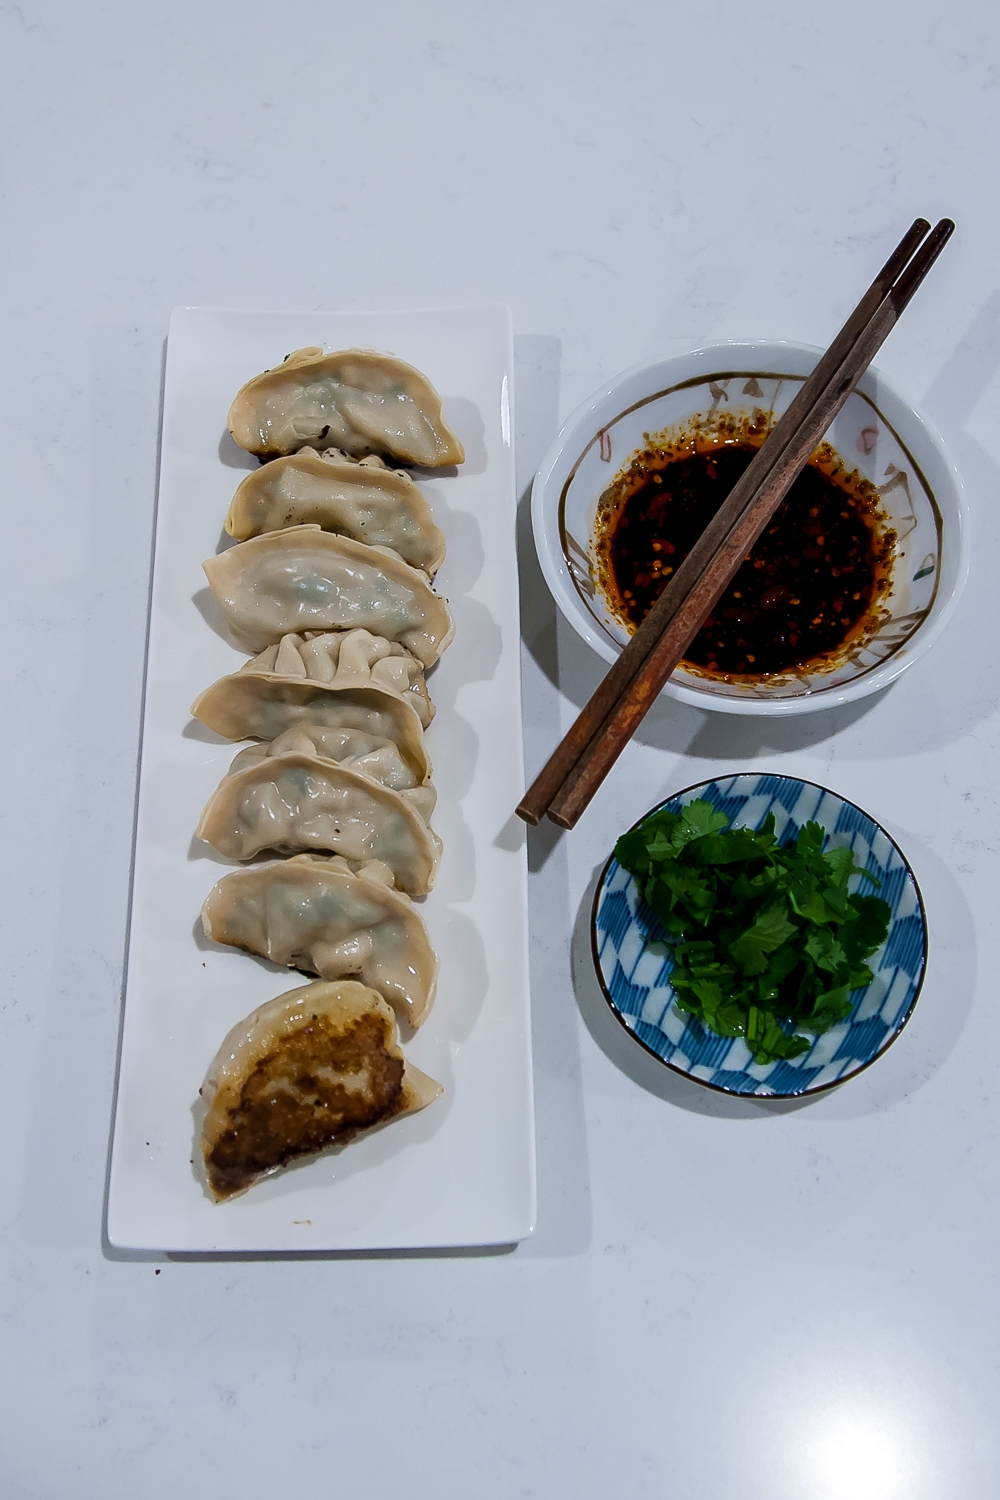 Chinese Pork, Leek, and Shrimp Dumplings and Pot Stickers - Completed Pot Stickers